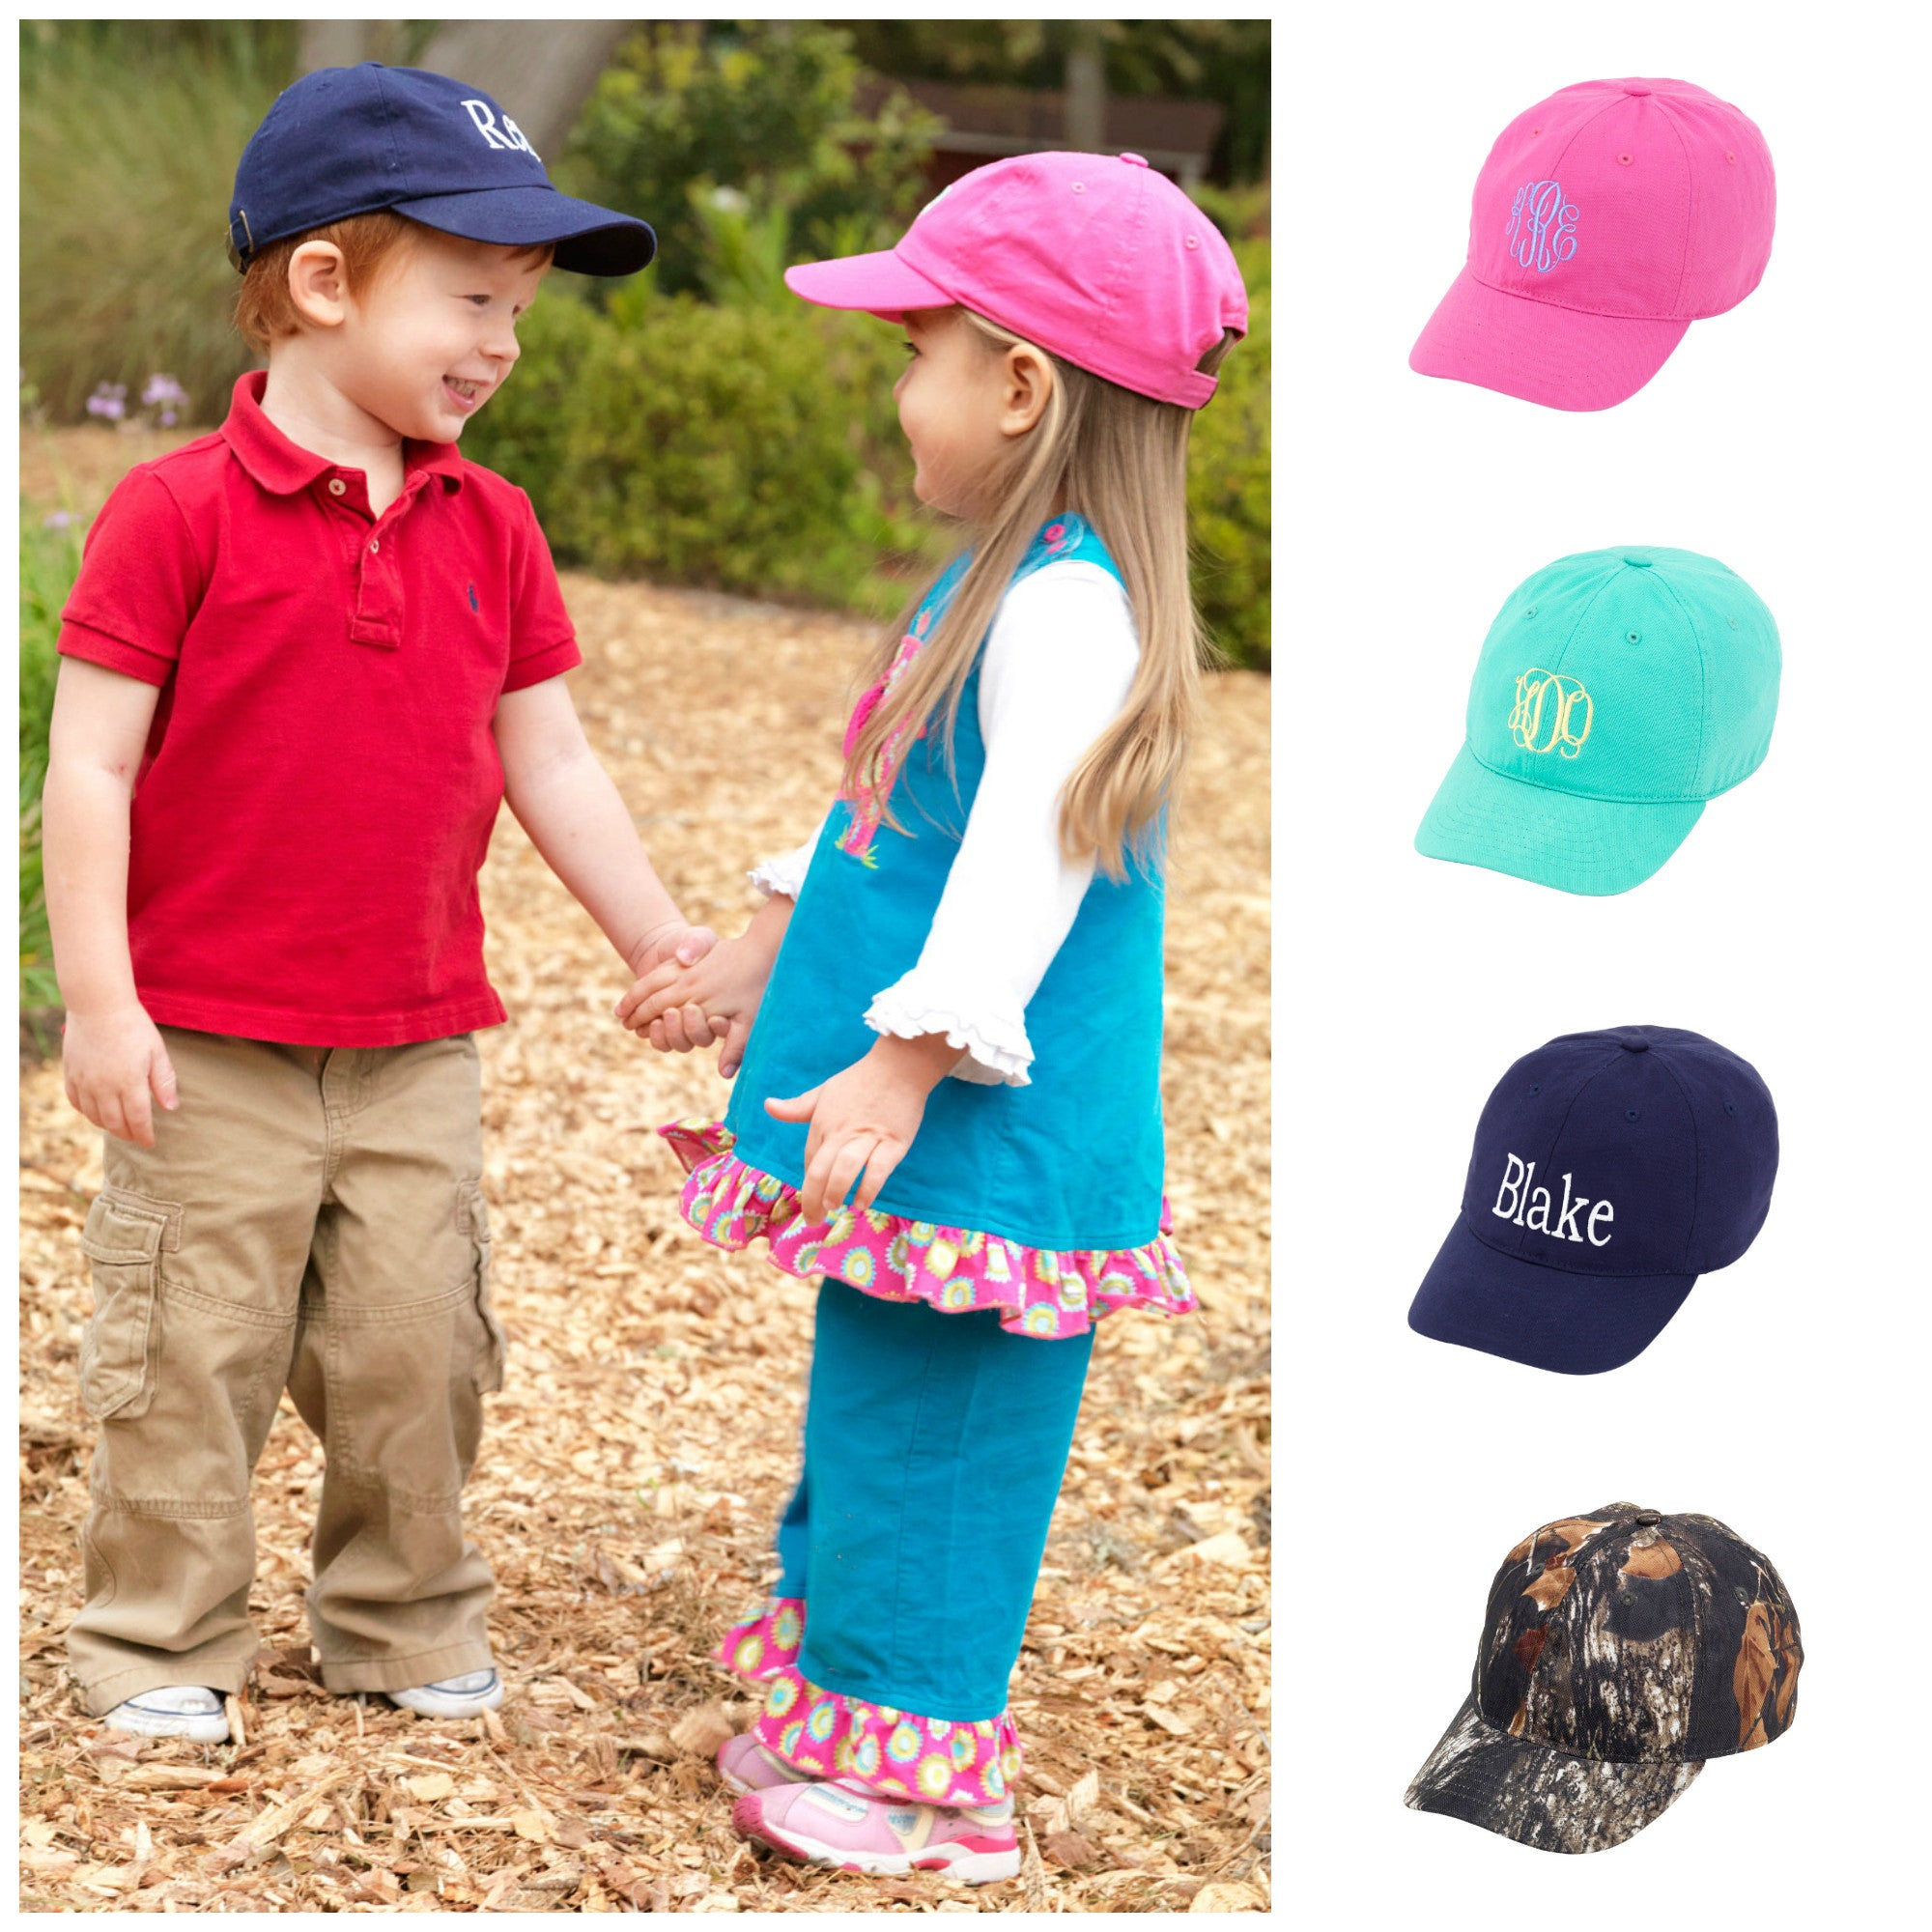 Personalized Monogrammed Kids Baseball Cap Toddler Hat – Gifts ... 8cda5230d974